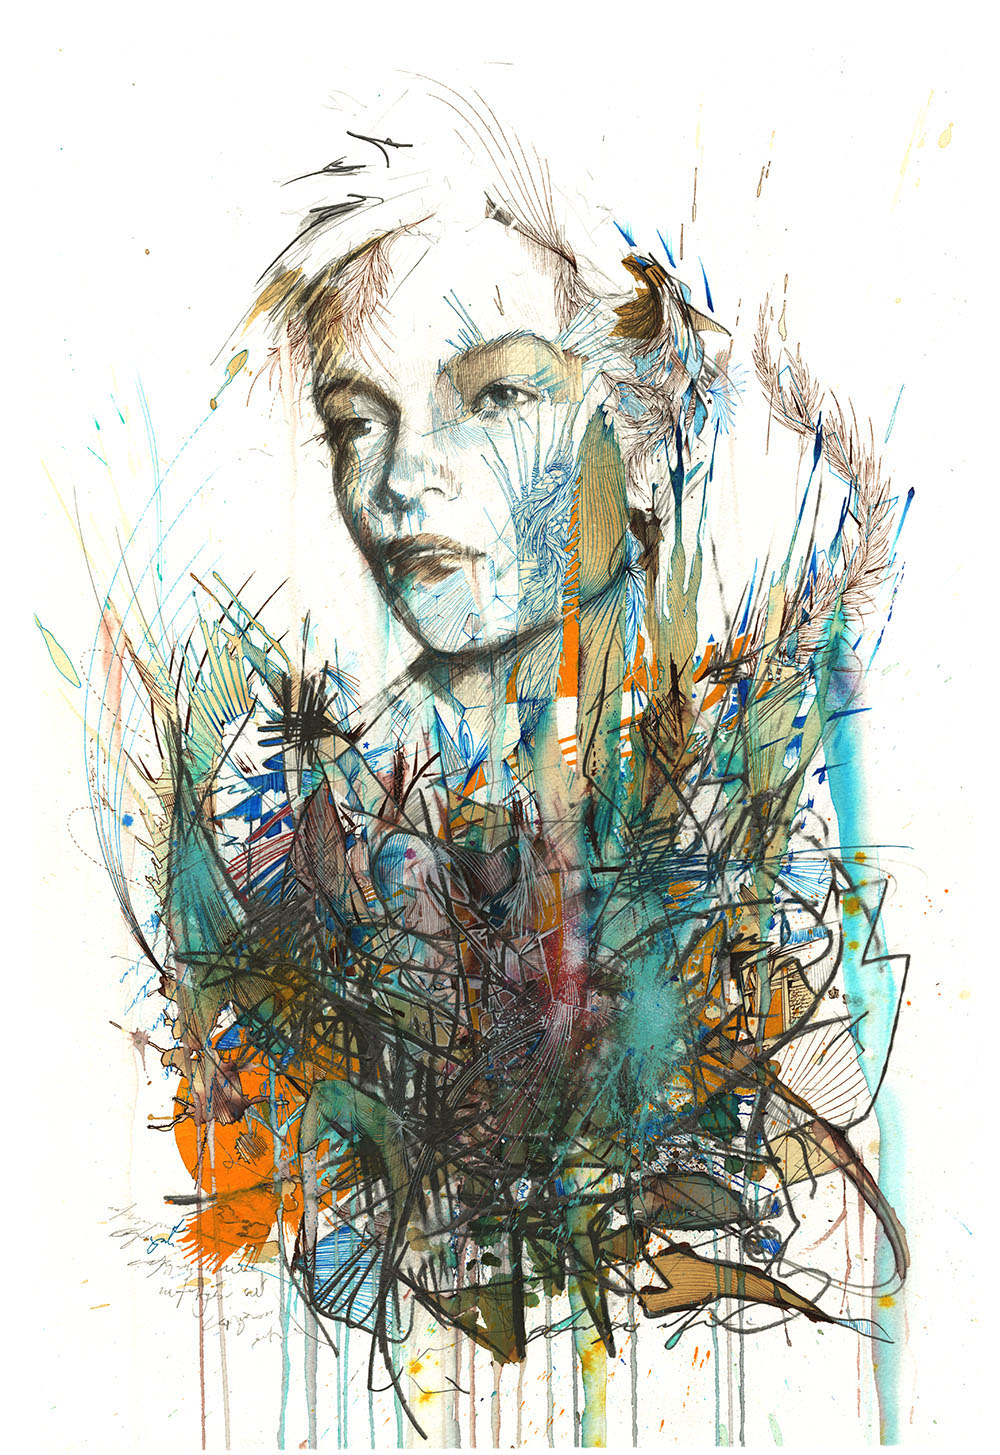 Rise by Carne Griffiths